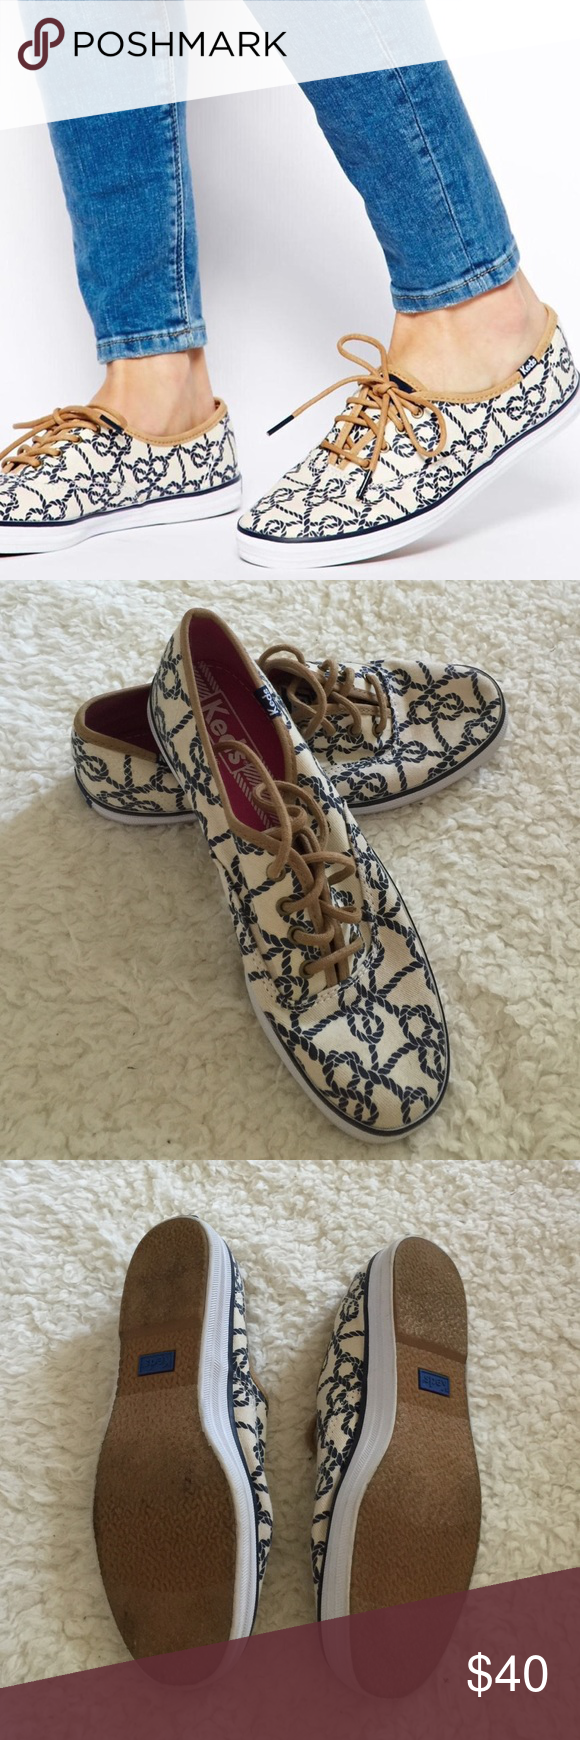 Keds champion knot Excellent condition keds champion knot sneaker size 5 keds Shoes Sneakers